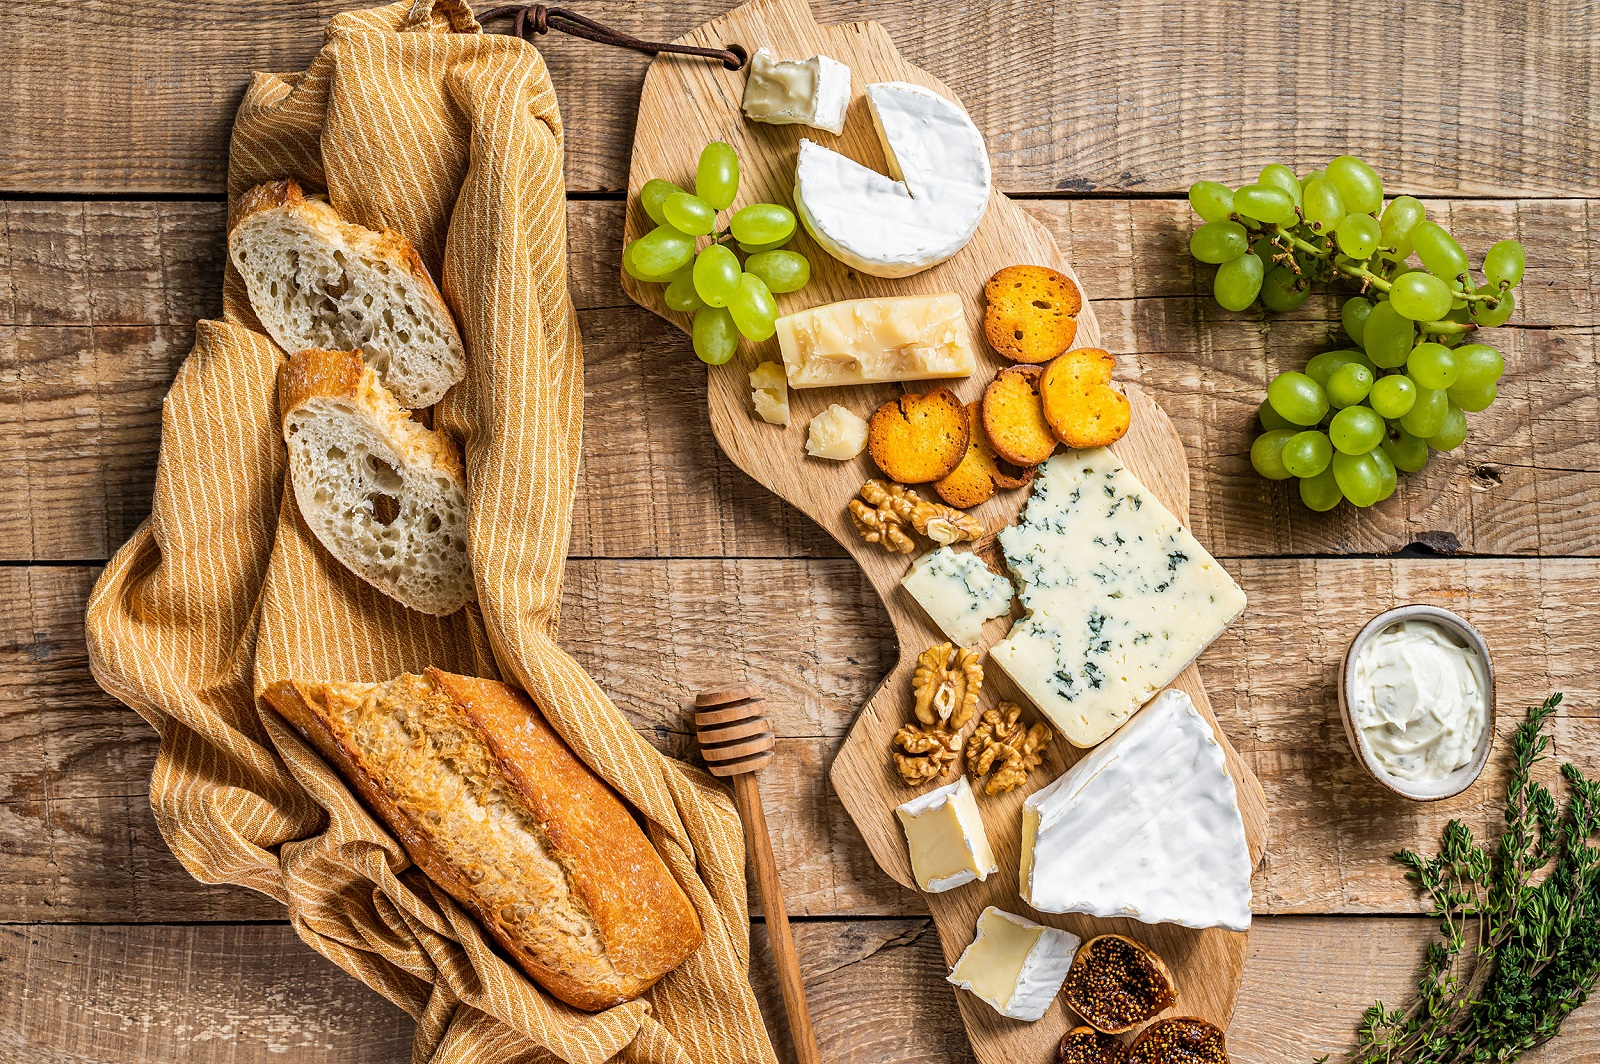 French bread and cheeses